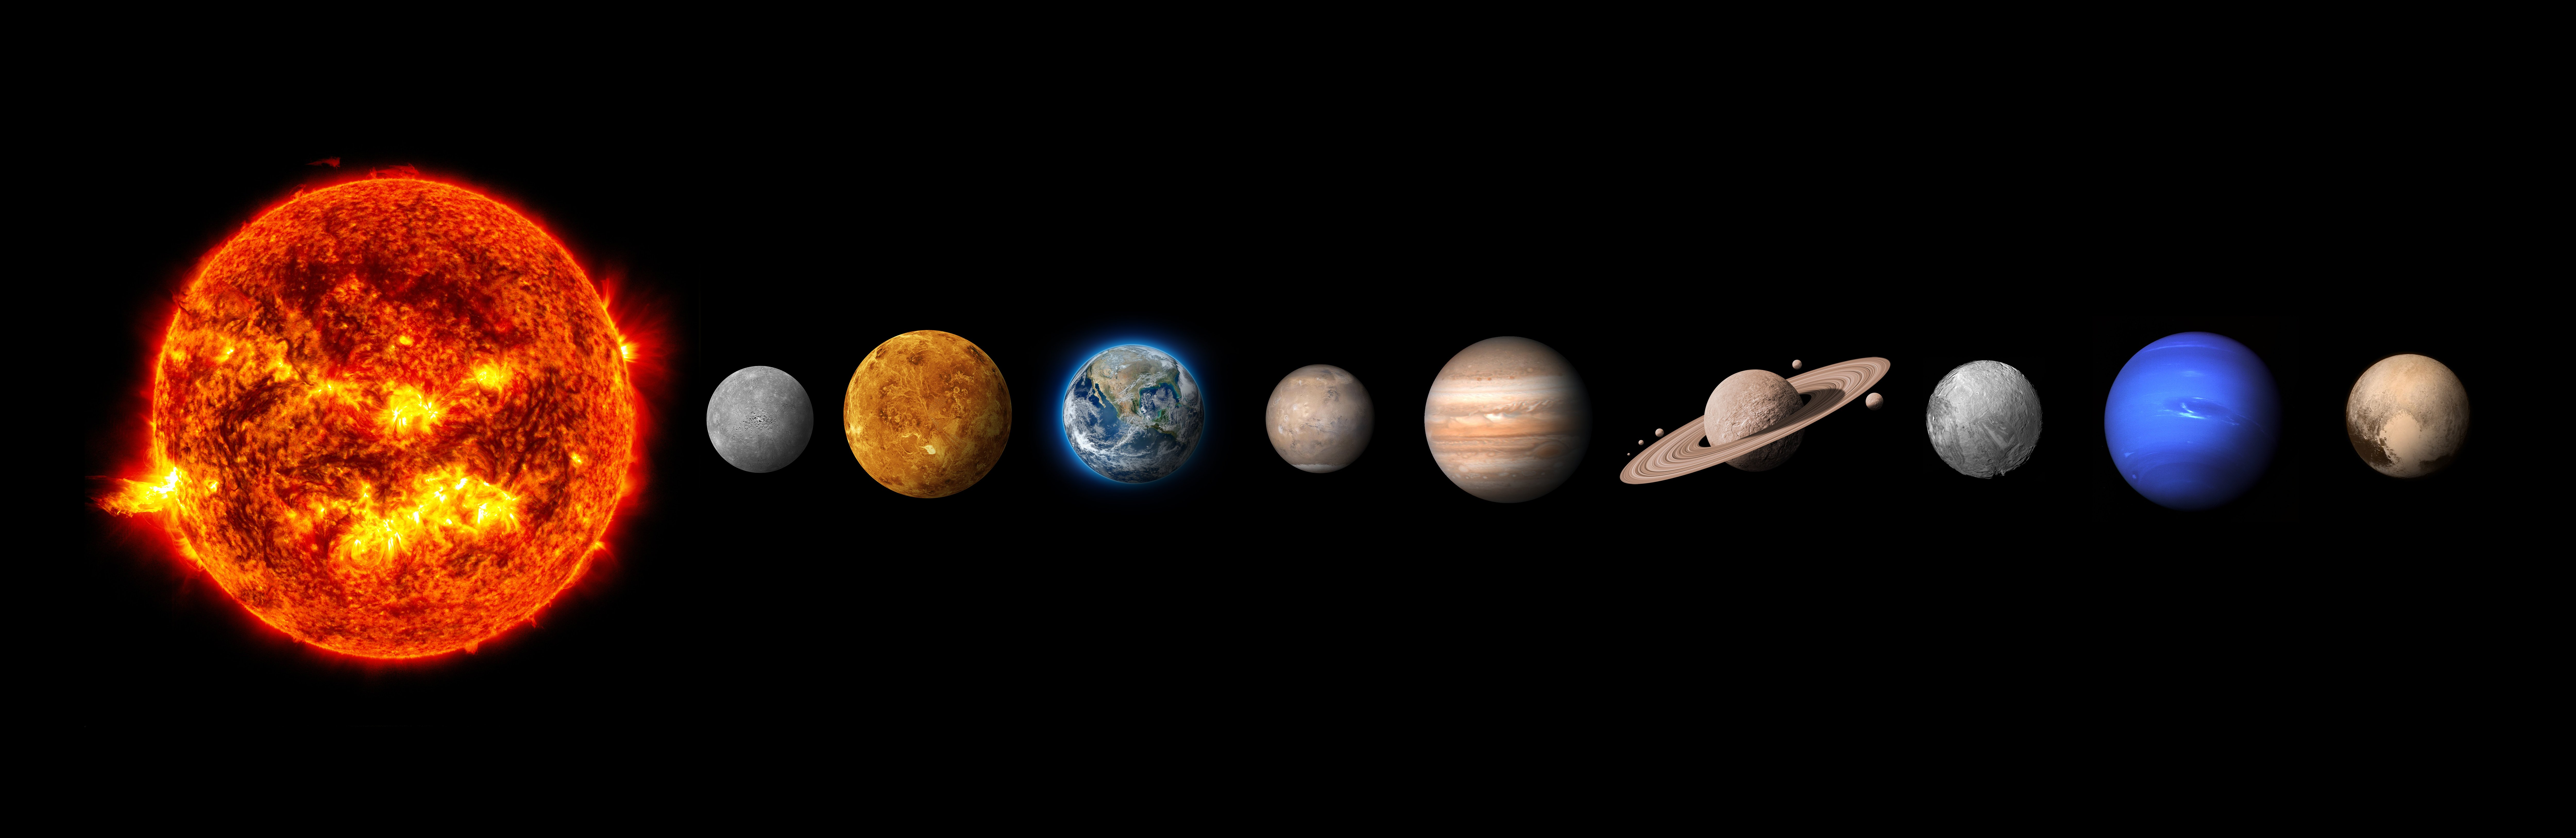 Our Solar System | Photo: Shutterstock